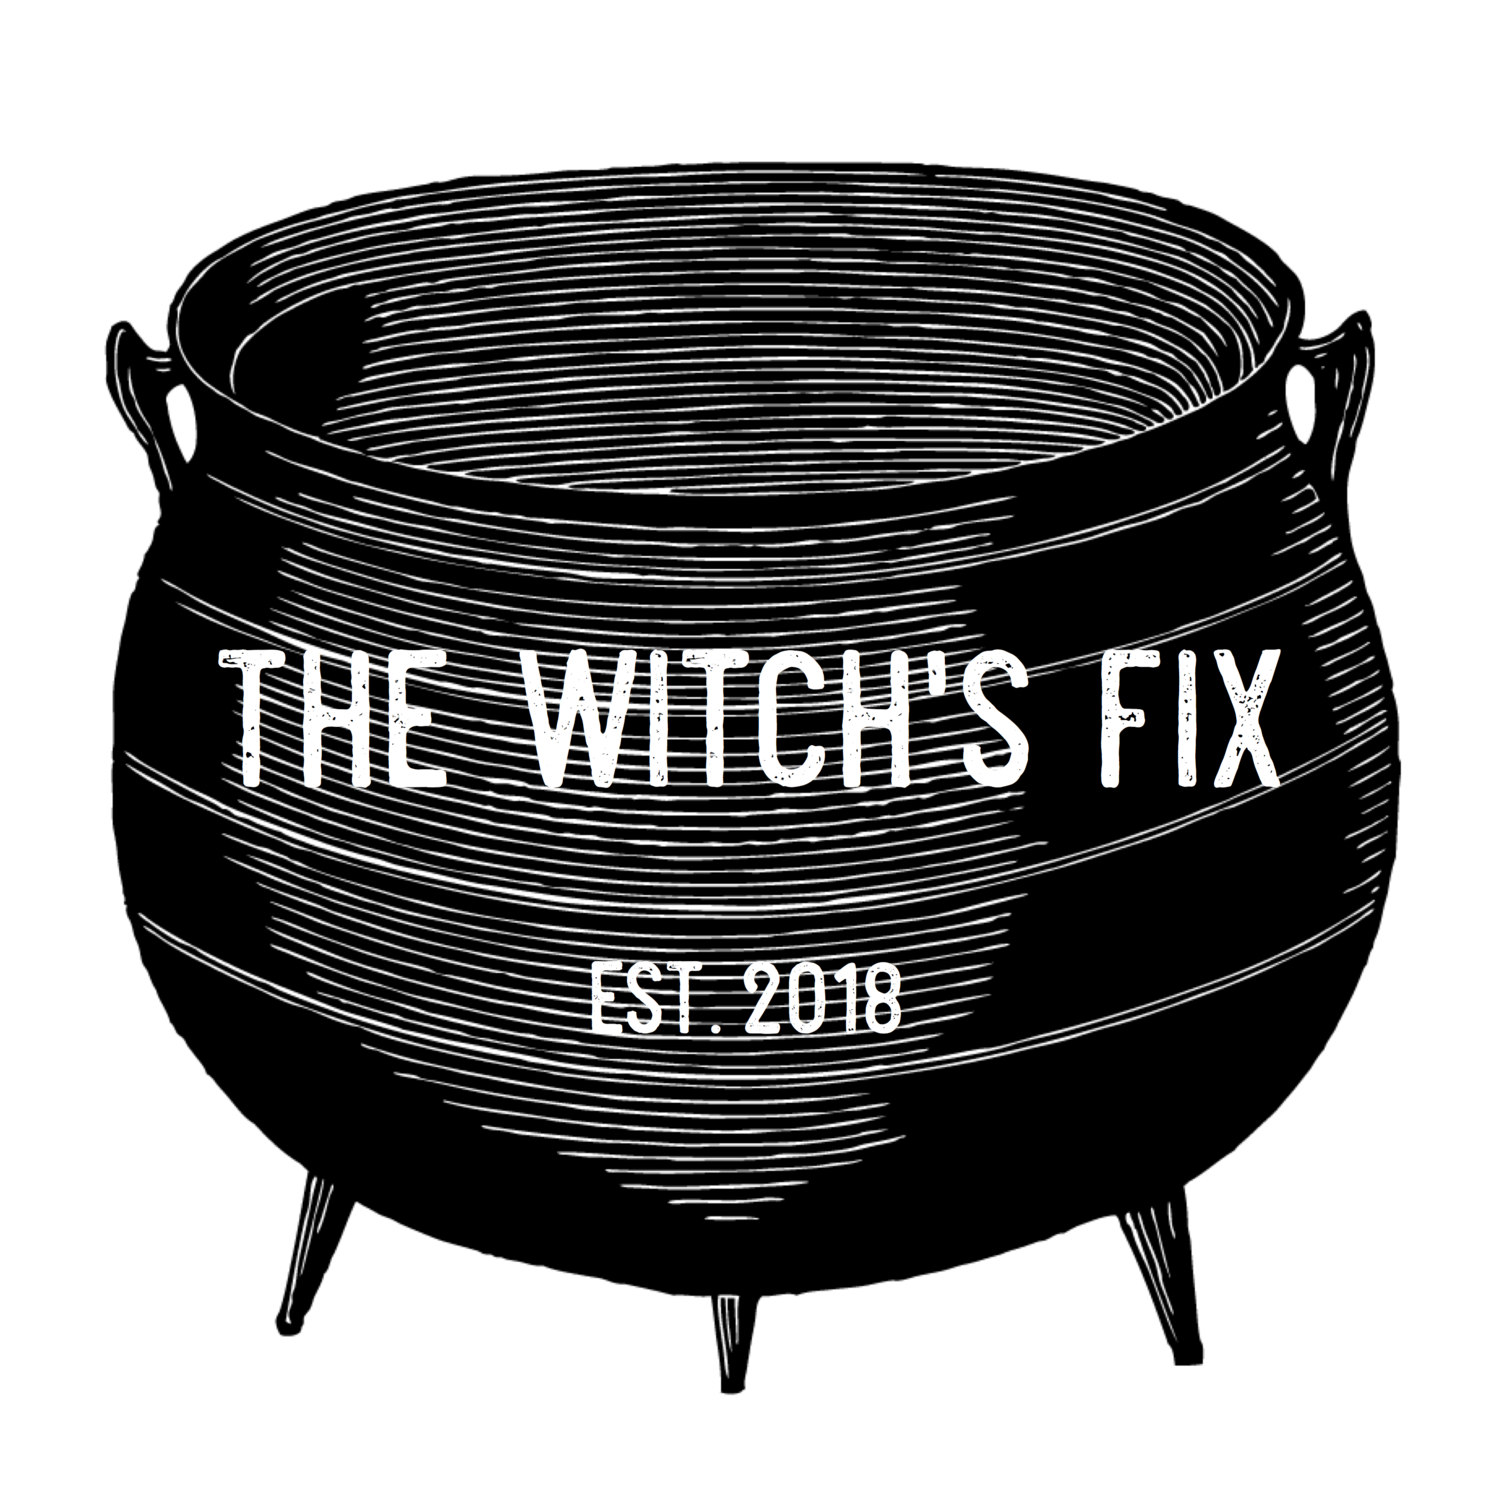 The Witch's Fix